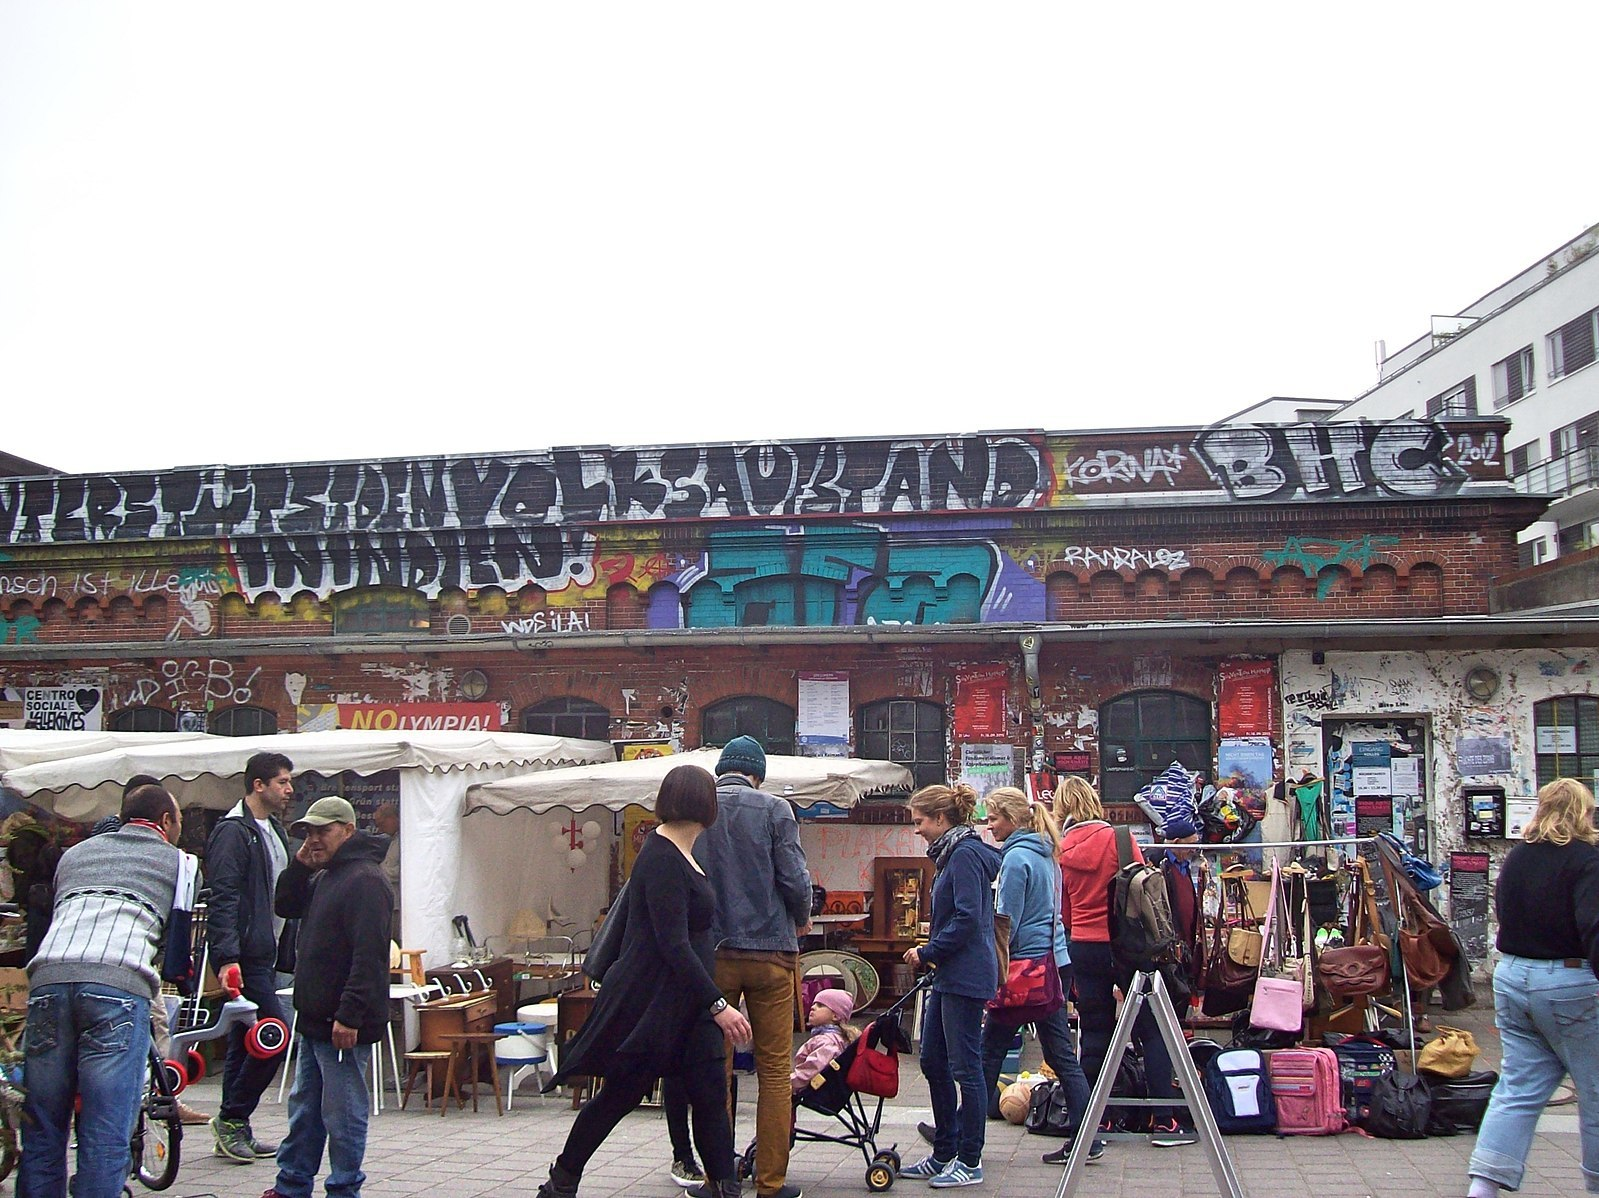 Browse the antiques and collectables at the Flohschanze flea market